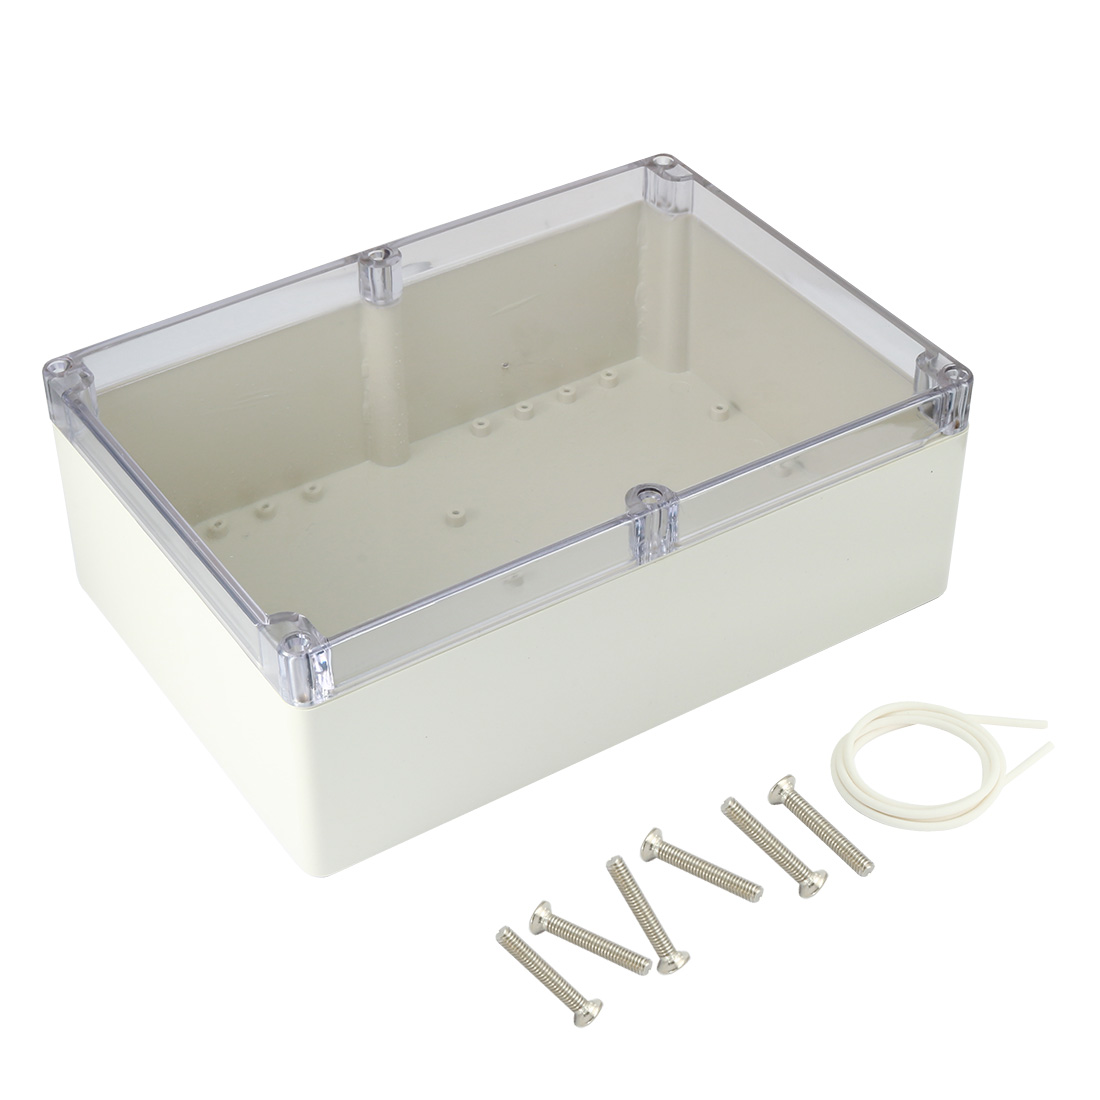 "10.4""x7.2""x3.74""(263mmx182mmx95mm) ABS Junction Box Universal Project Enclosure w PC Transparent Cover"